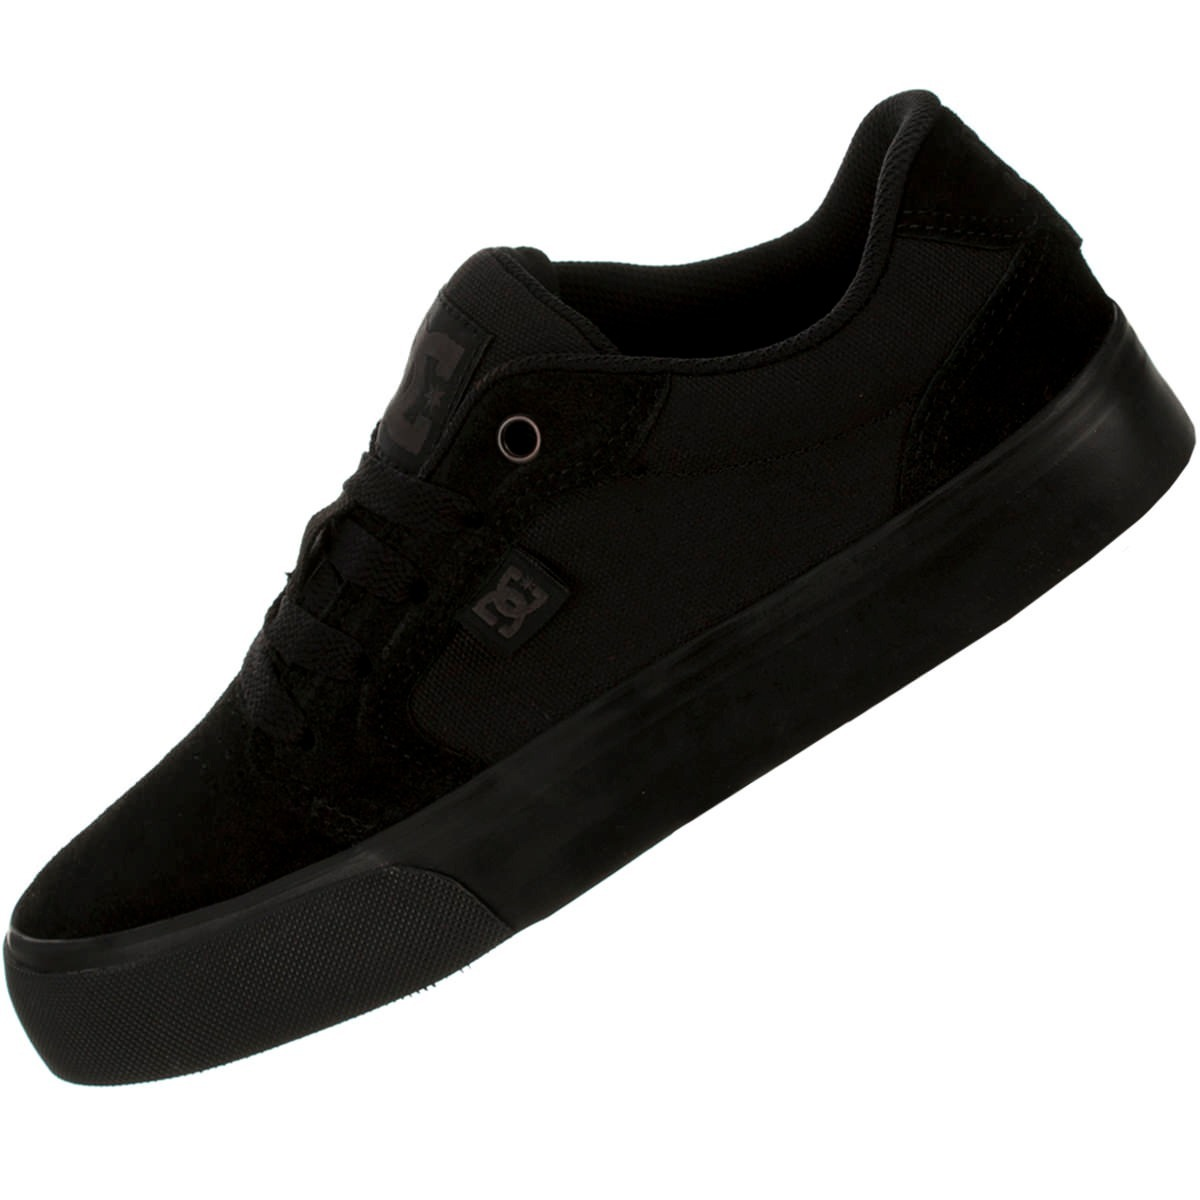 Tênis Dc Shoes Tênis Dc Shoes Anvil 2 La Black Black - R  309 aa3e426ae0176